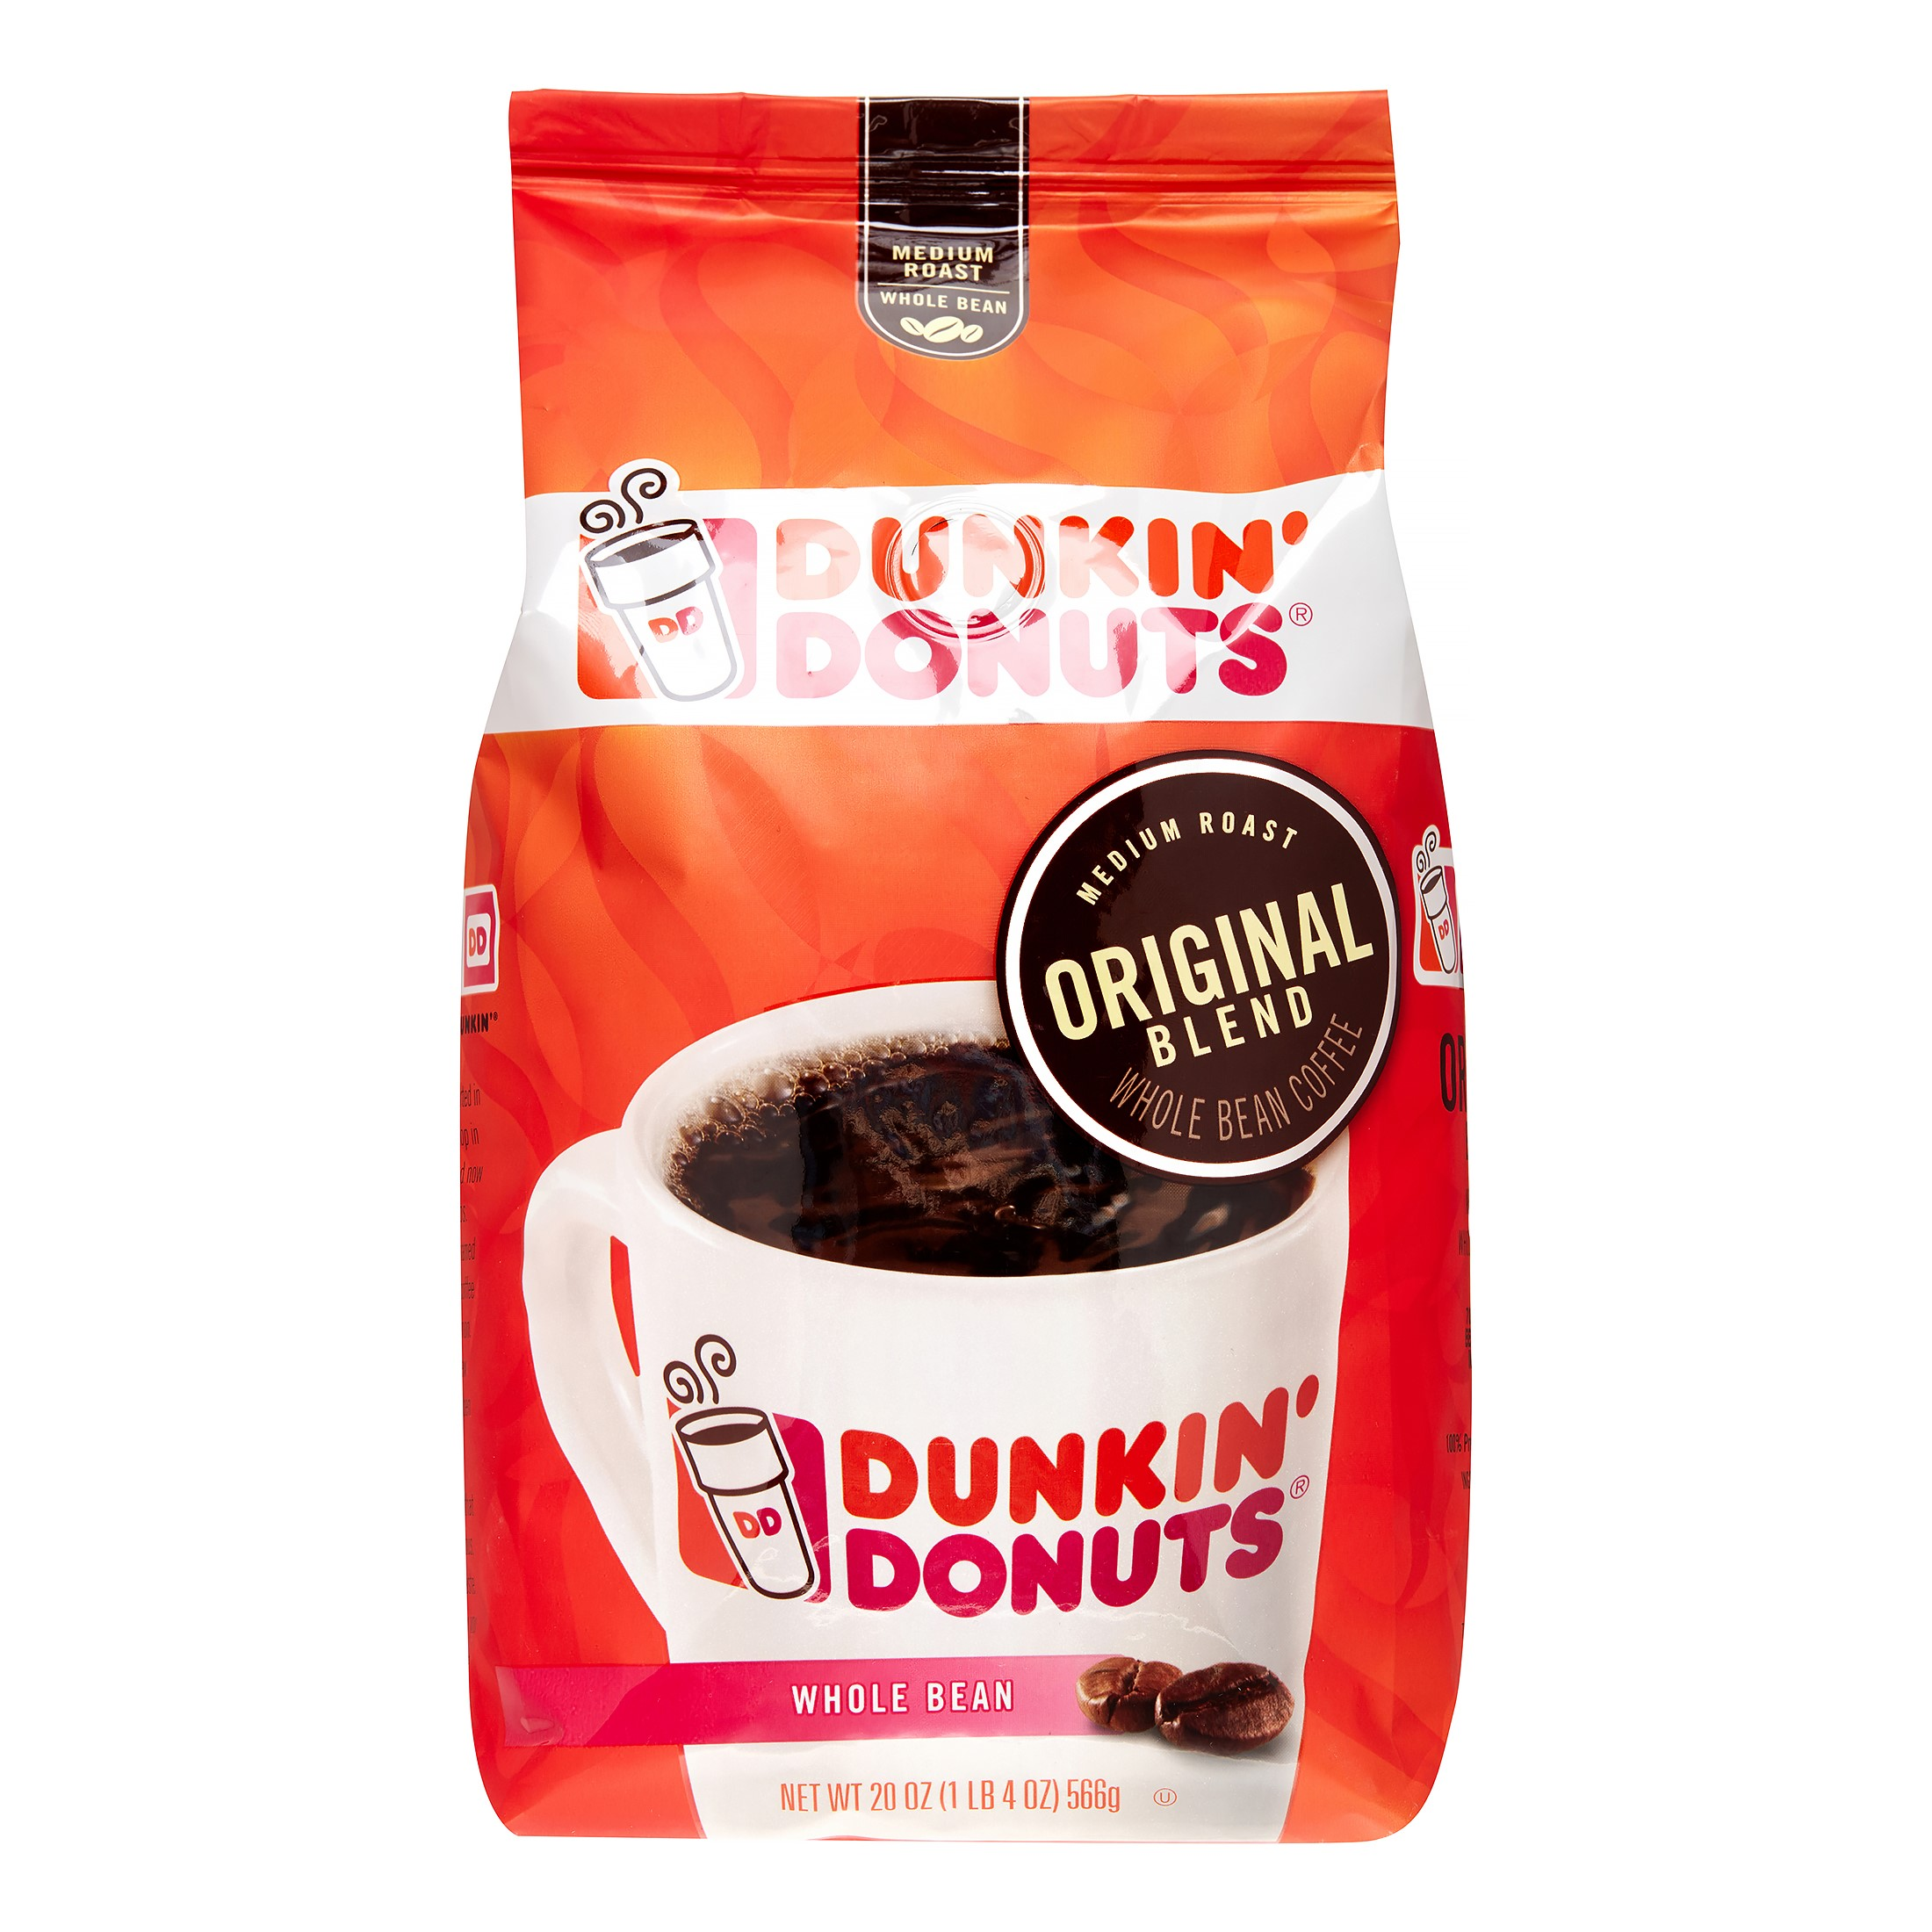 Dunkin' Donuts Medium Roast Whole Bean Coffee, Original Blend, 20 Oz